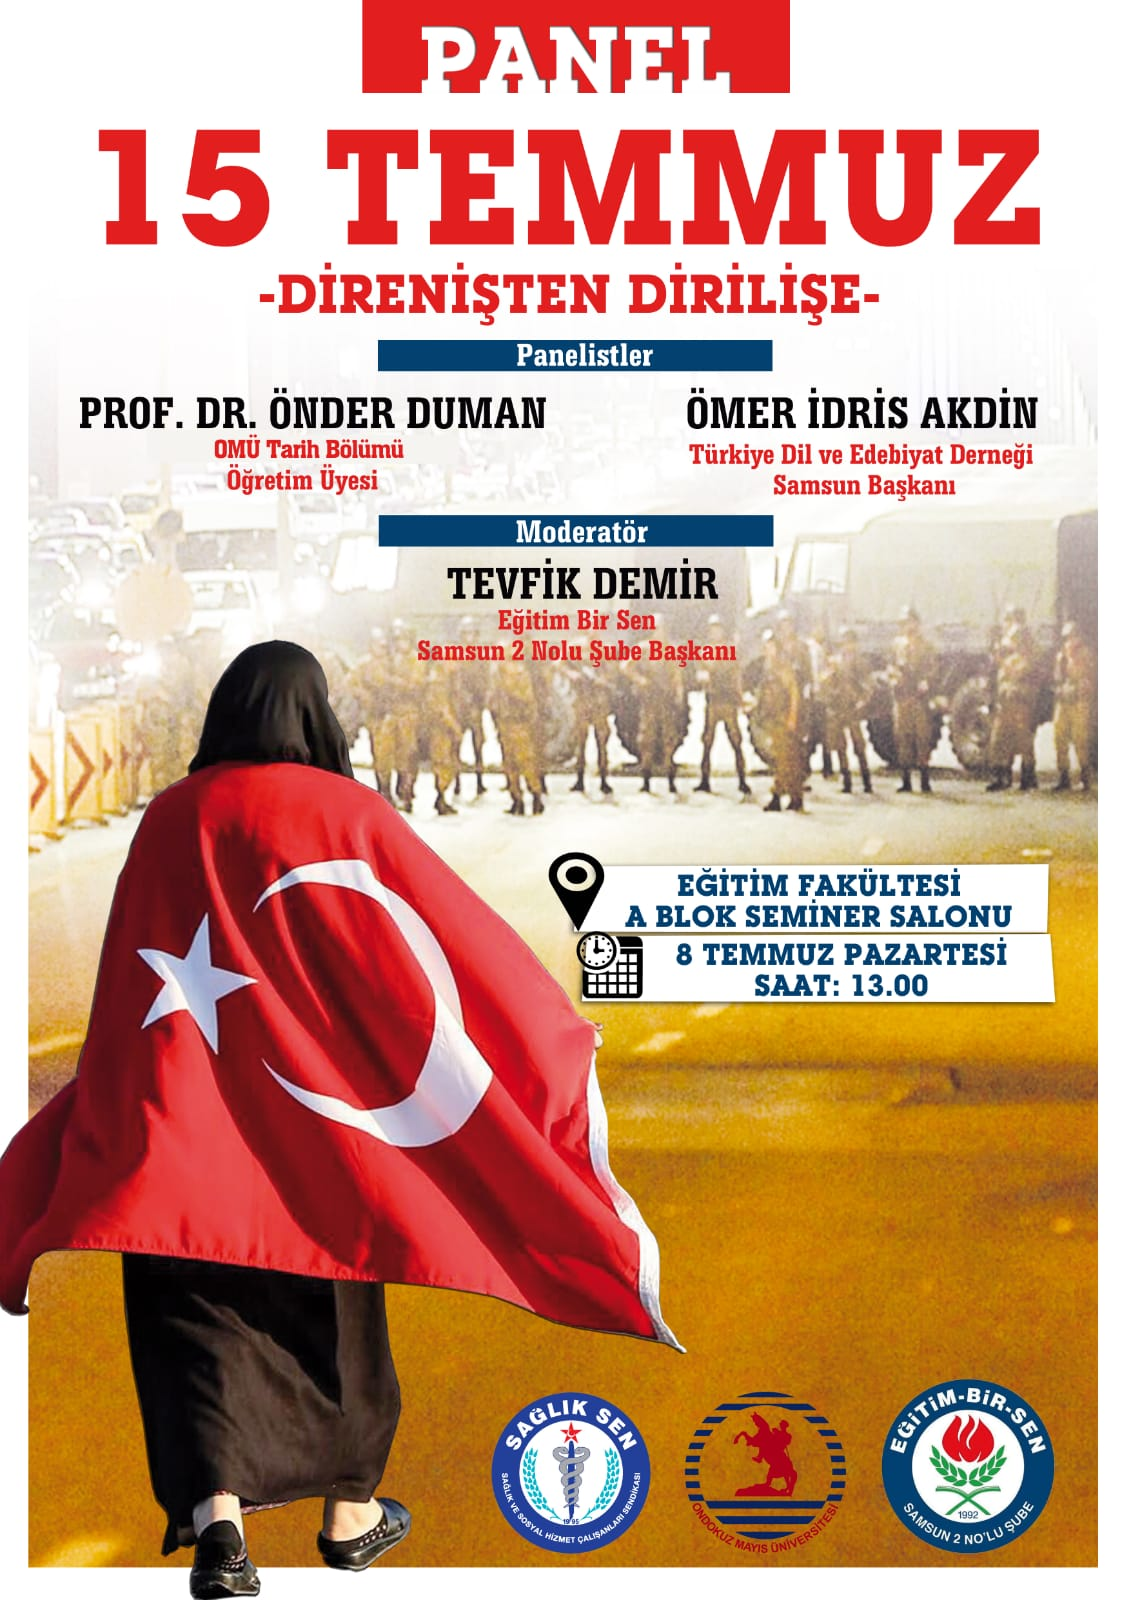 http://www.omu.edu.tr/sites/default/files/15_temmuz.jpeg